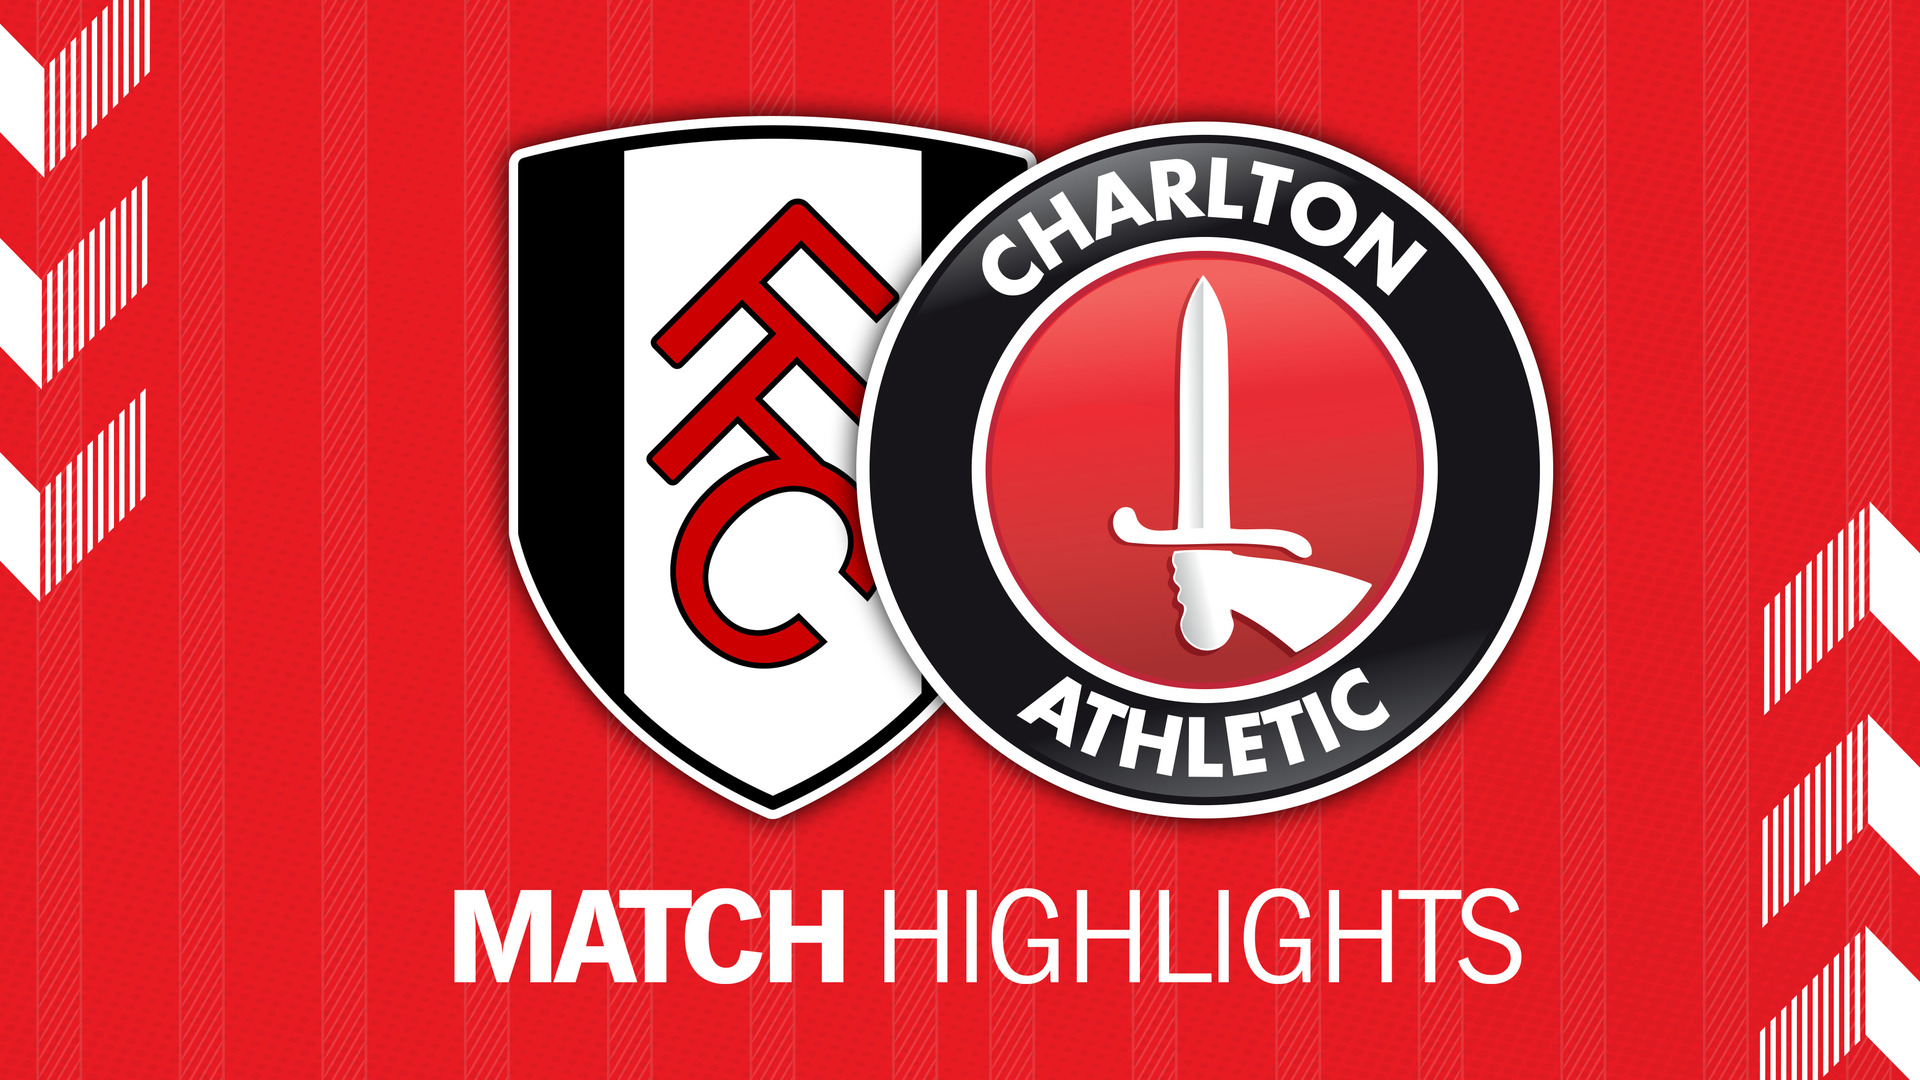 12 HIGHLIGHTS | Fulham 2 Charlton 2 (October 2019)